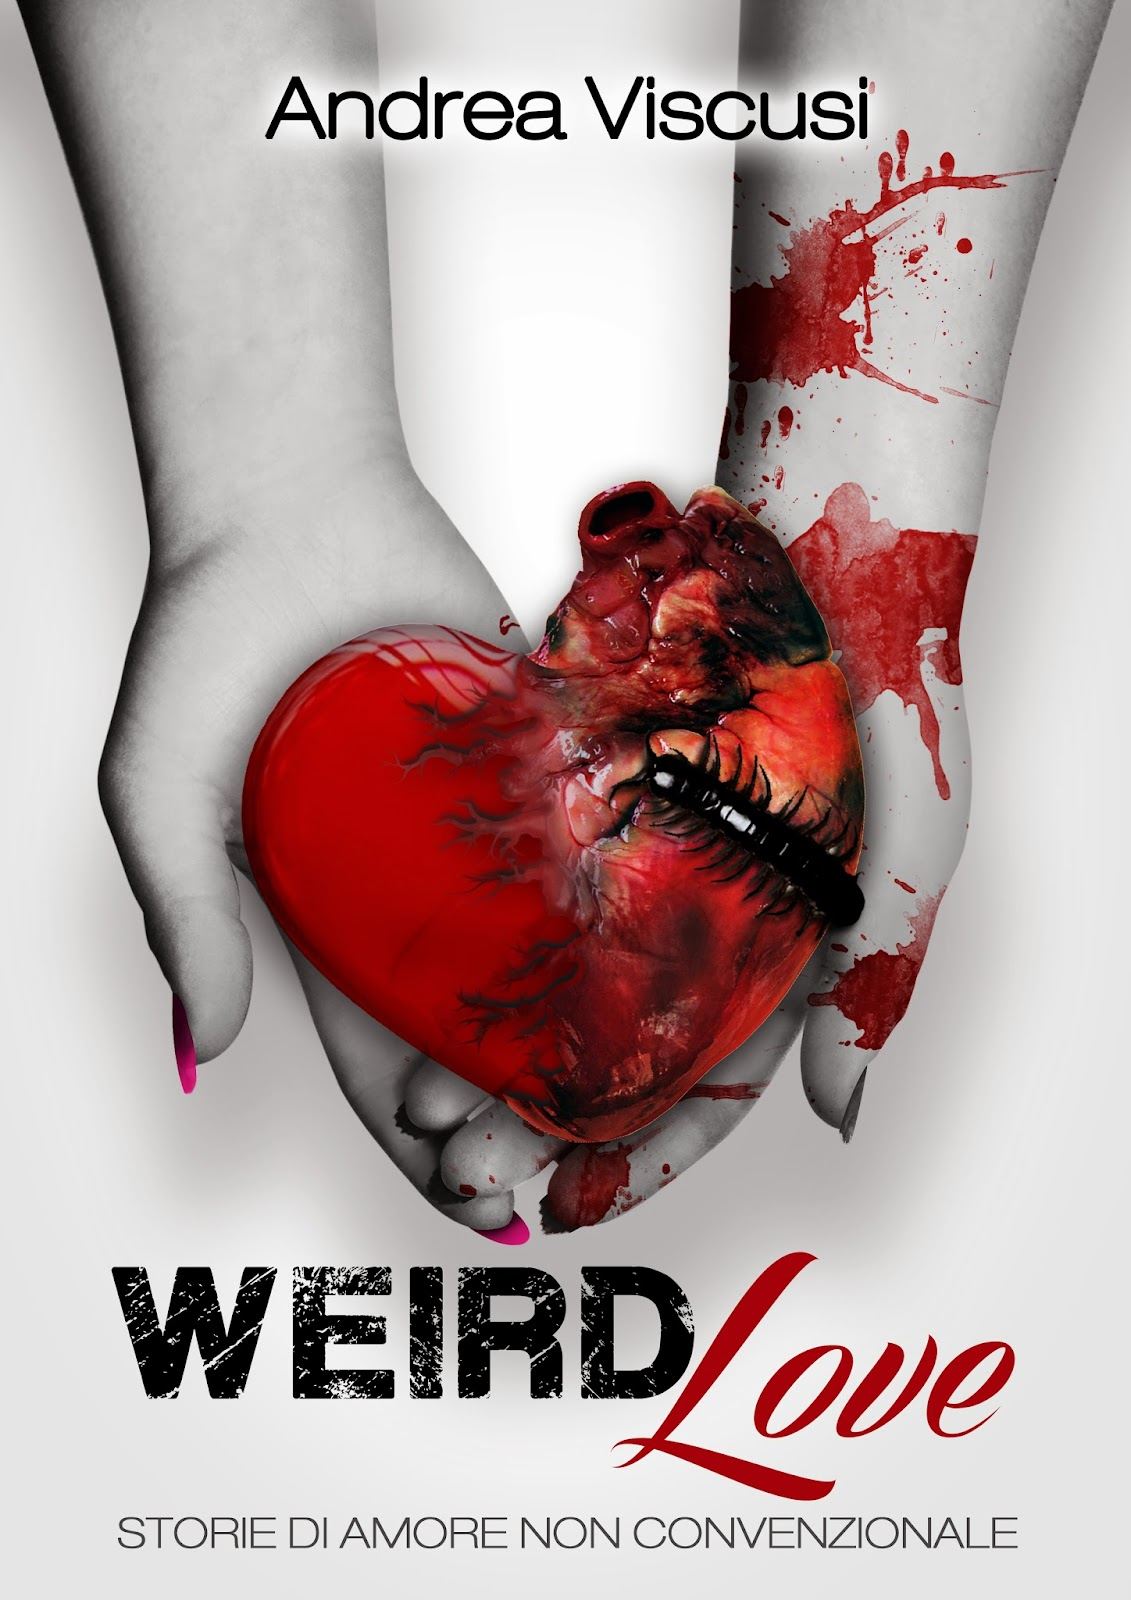 http://www.amazon.it/Weird-Love-Storie-amore-convenzionale-ebook/dp/B00IDEZV4A/ref=sr_1_5?s=digital-text&ie=UTF8&qid=1392316904&sr=1-5